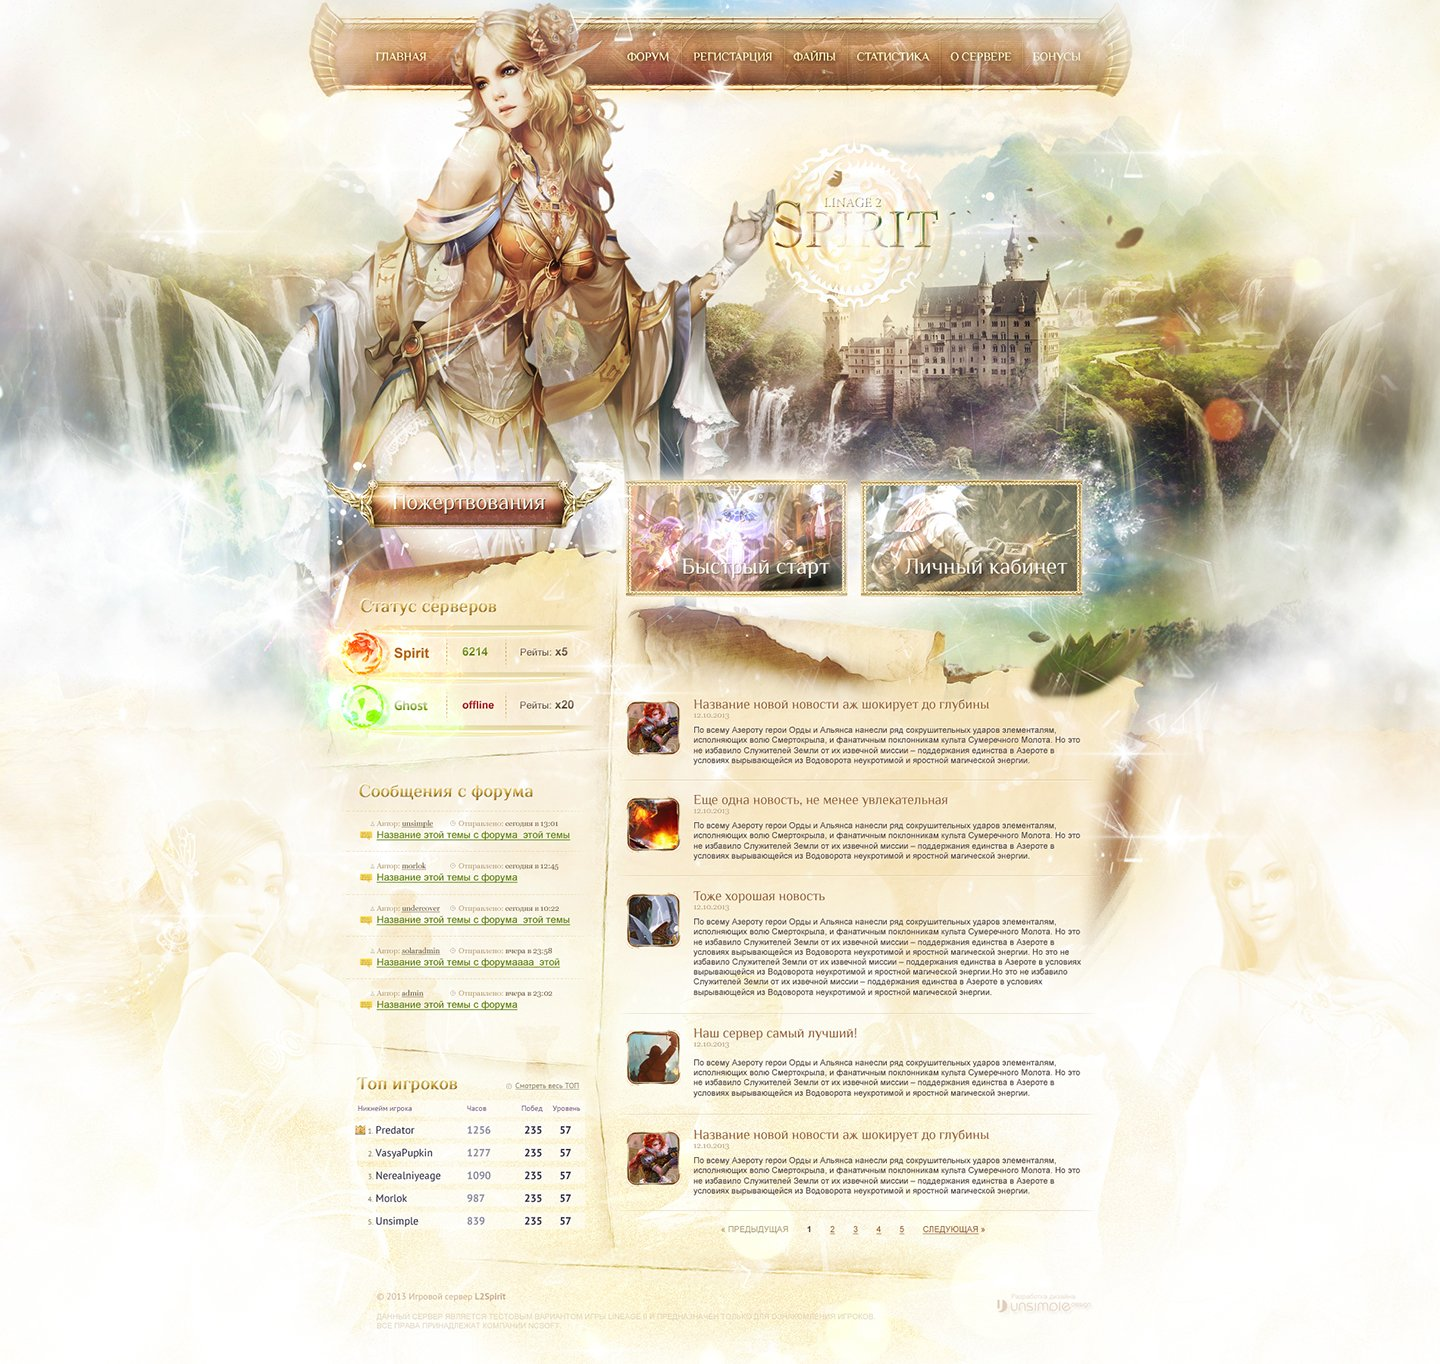 L2Spirit > Website design for Lineage 2 private server. Main page